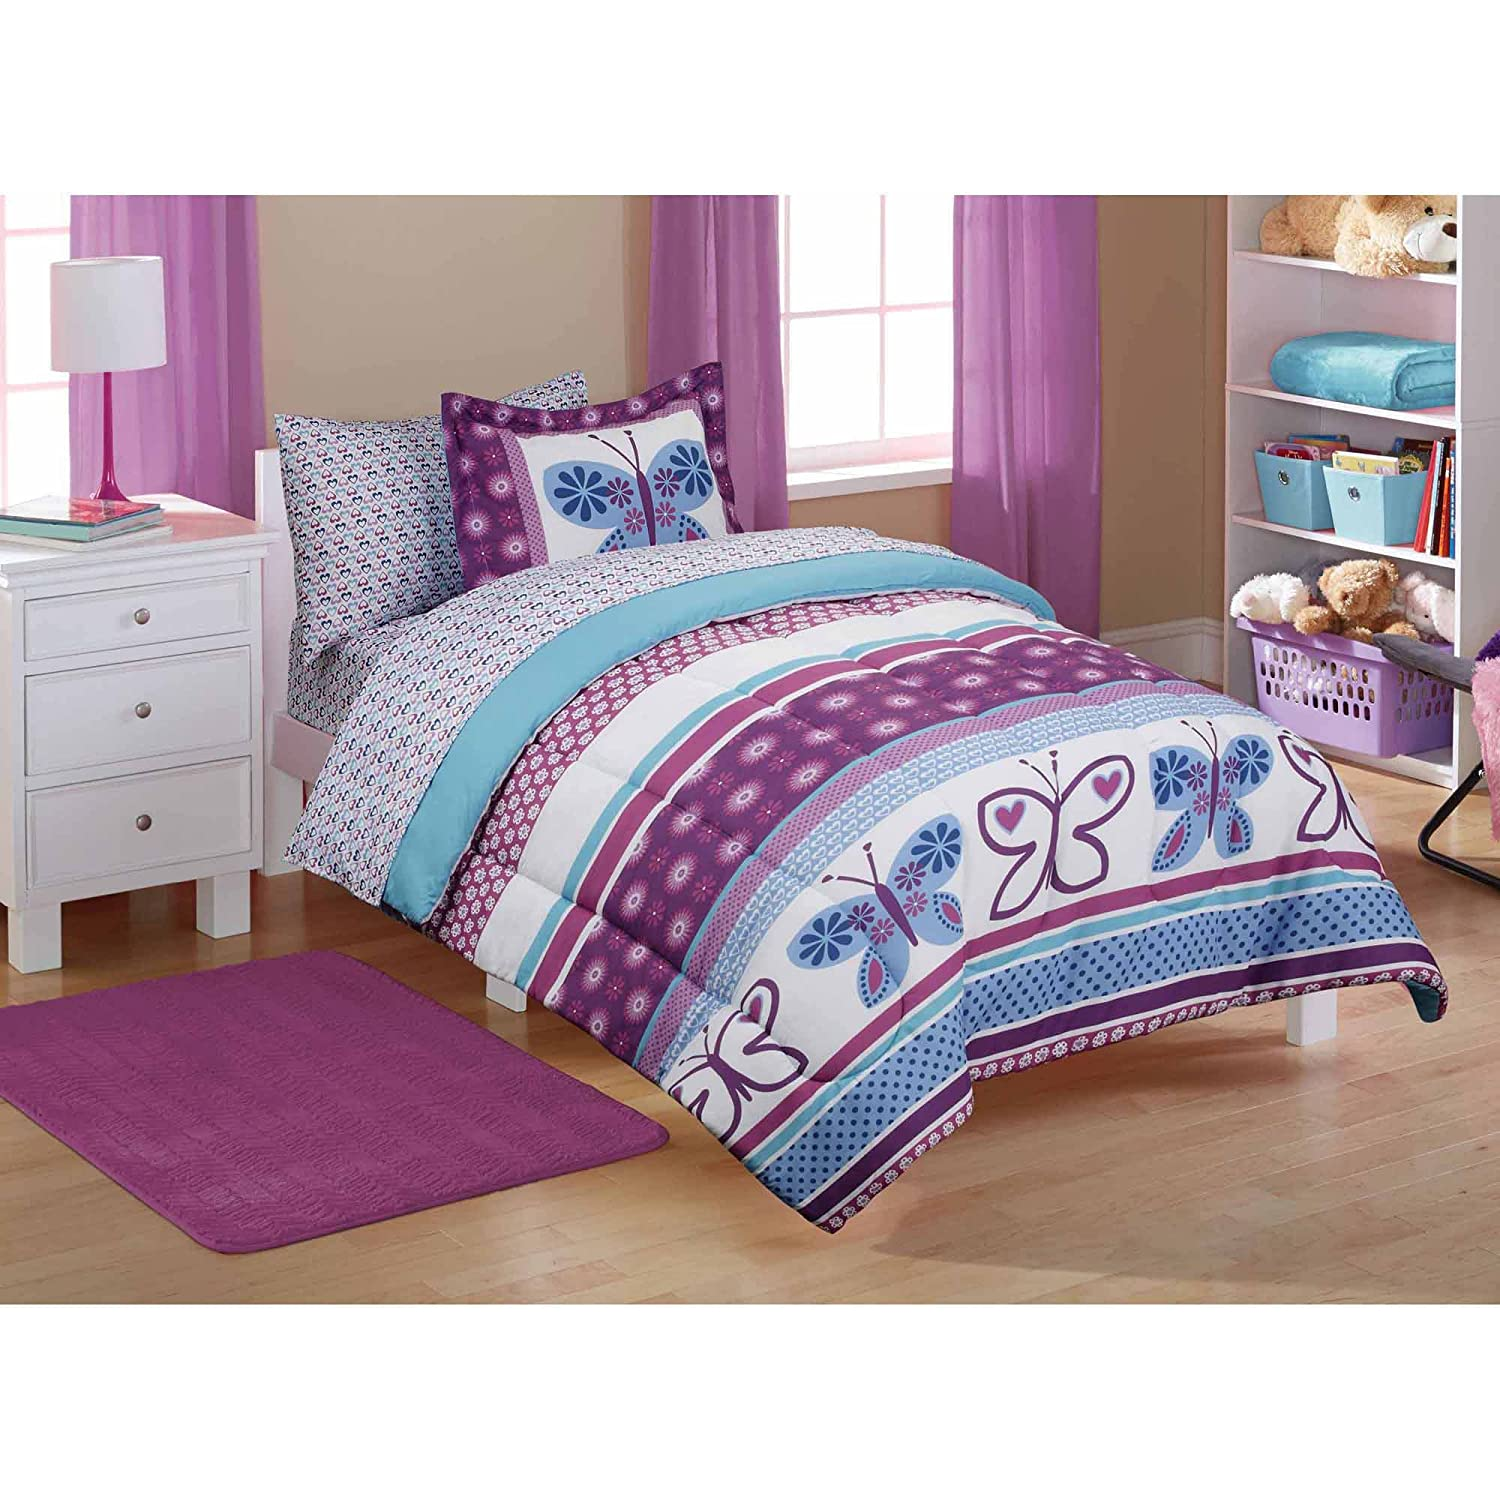 bedding elegant lovely saym girl for polyester and teen duvet home set comforter sets style fiber print cover rural pin girls